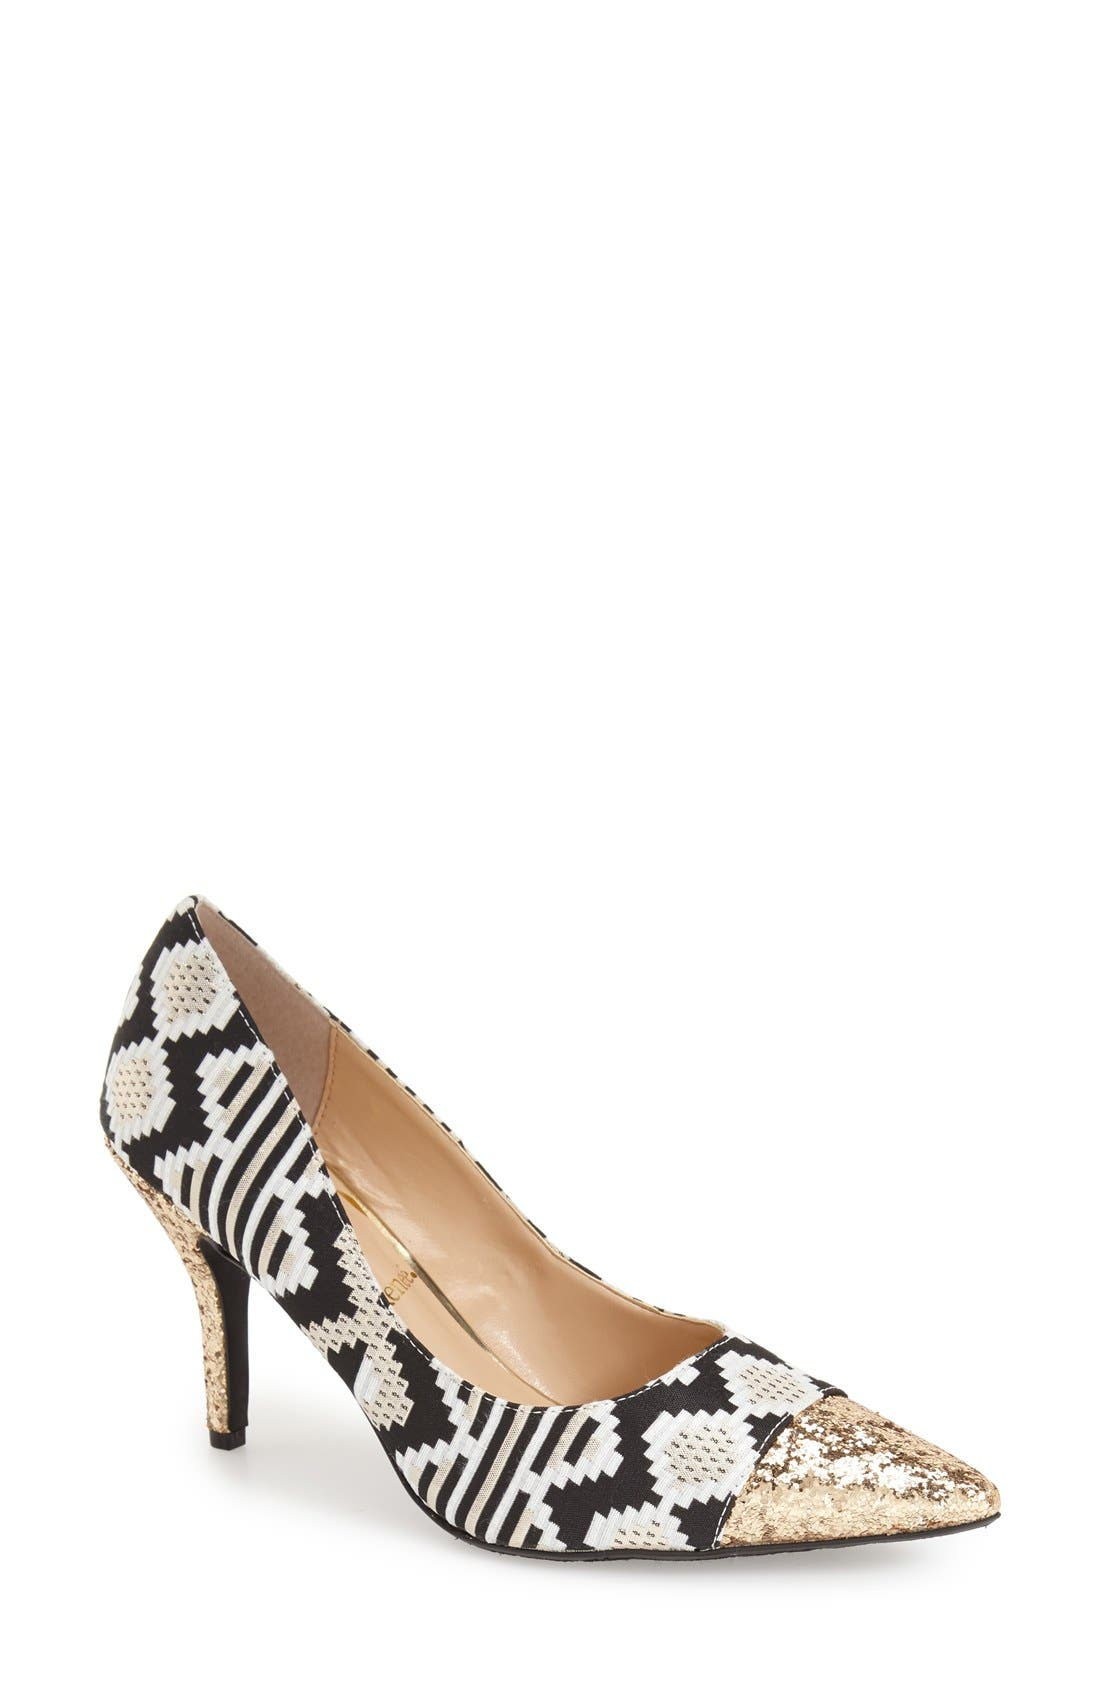 Alternate Image 1 Selected - J. Reneé 'Ryenne' Pointy Toe Pump (Women)